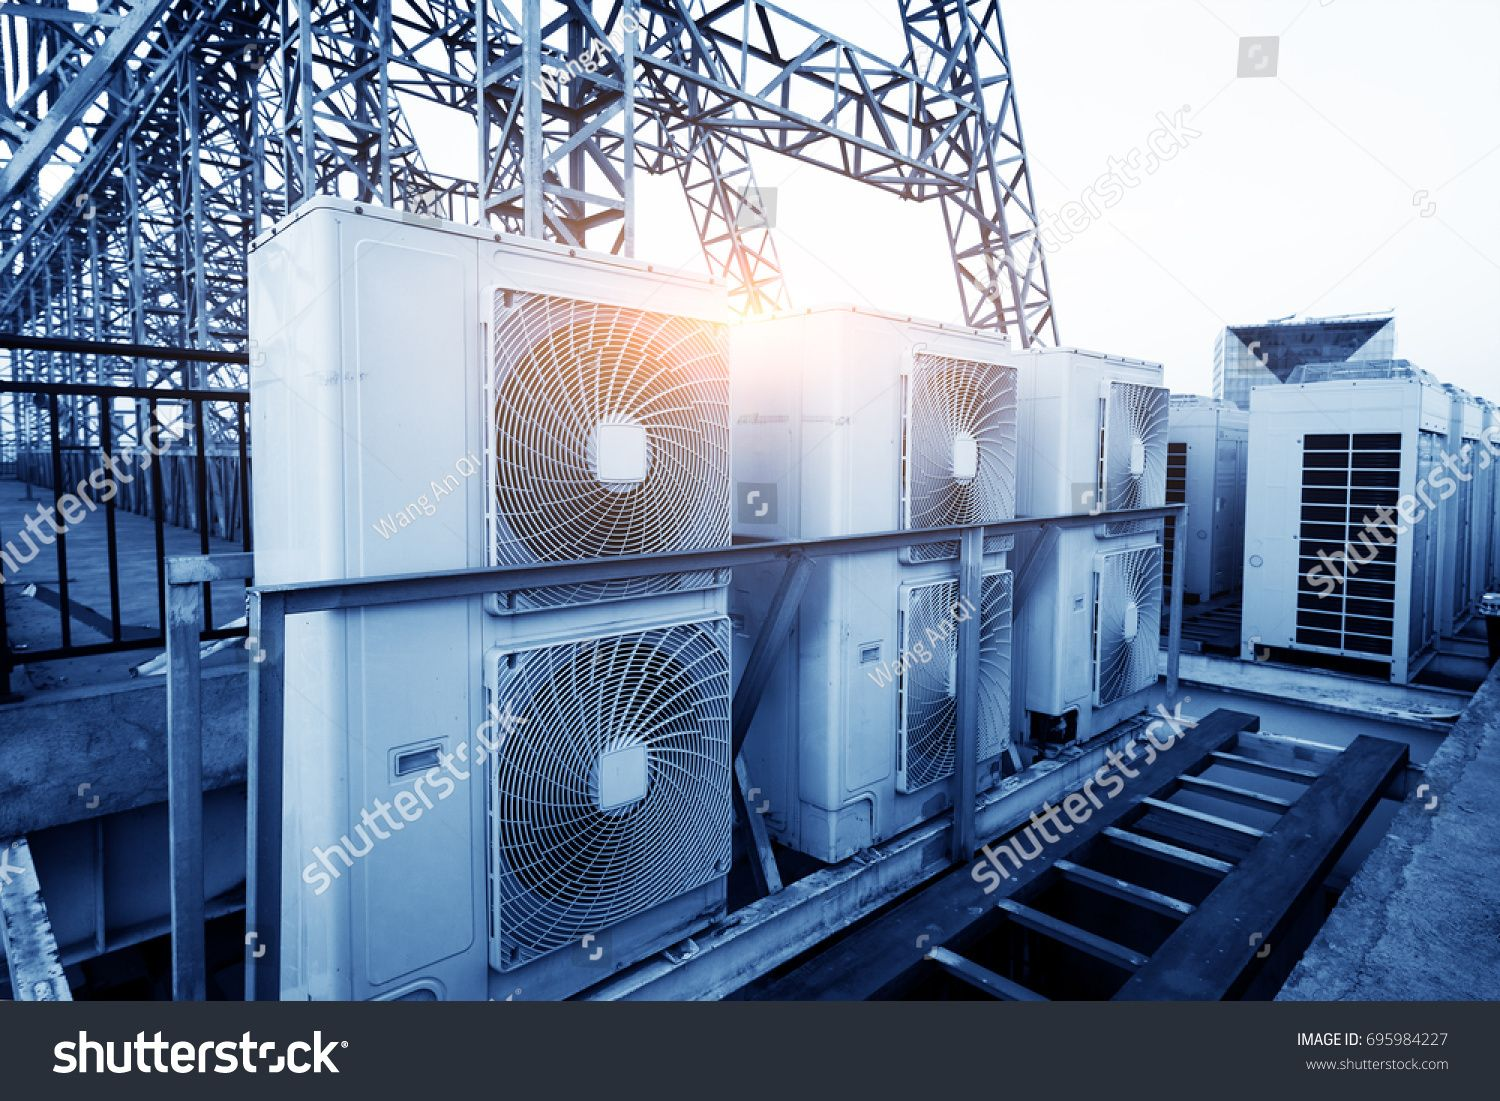 Air conditioner units (HVAC) on a roof of industrial